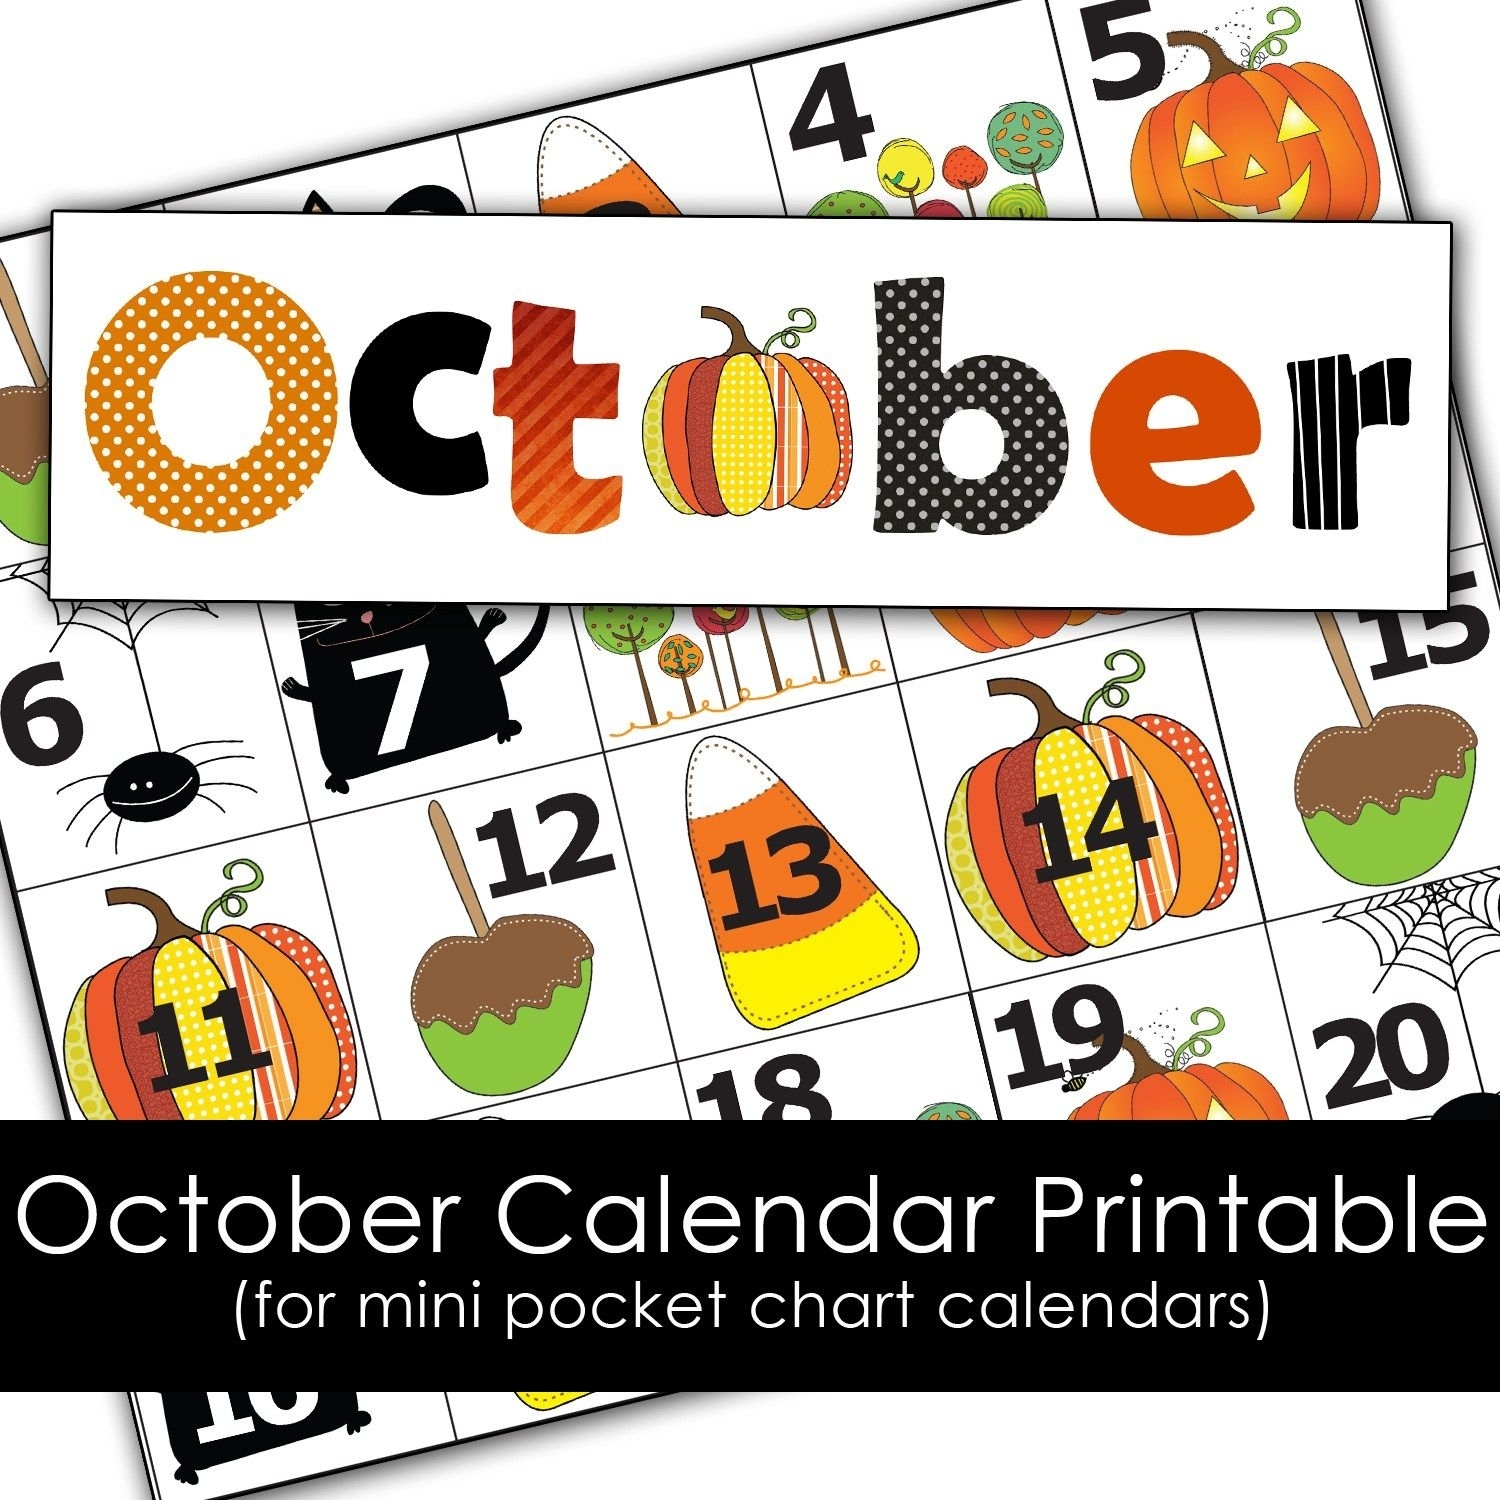 Free October Calendar Cards | Calendar Printables, Pocket